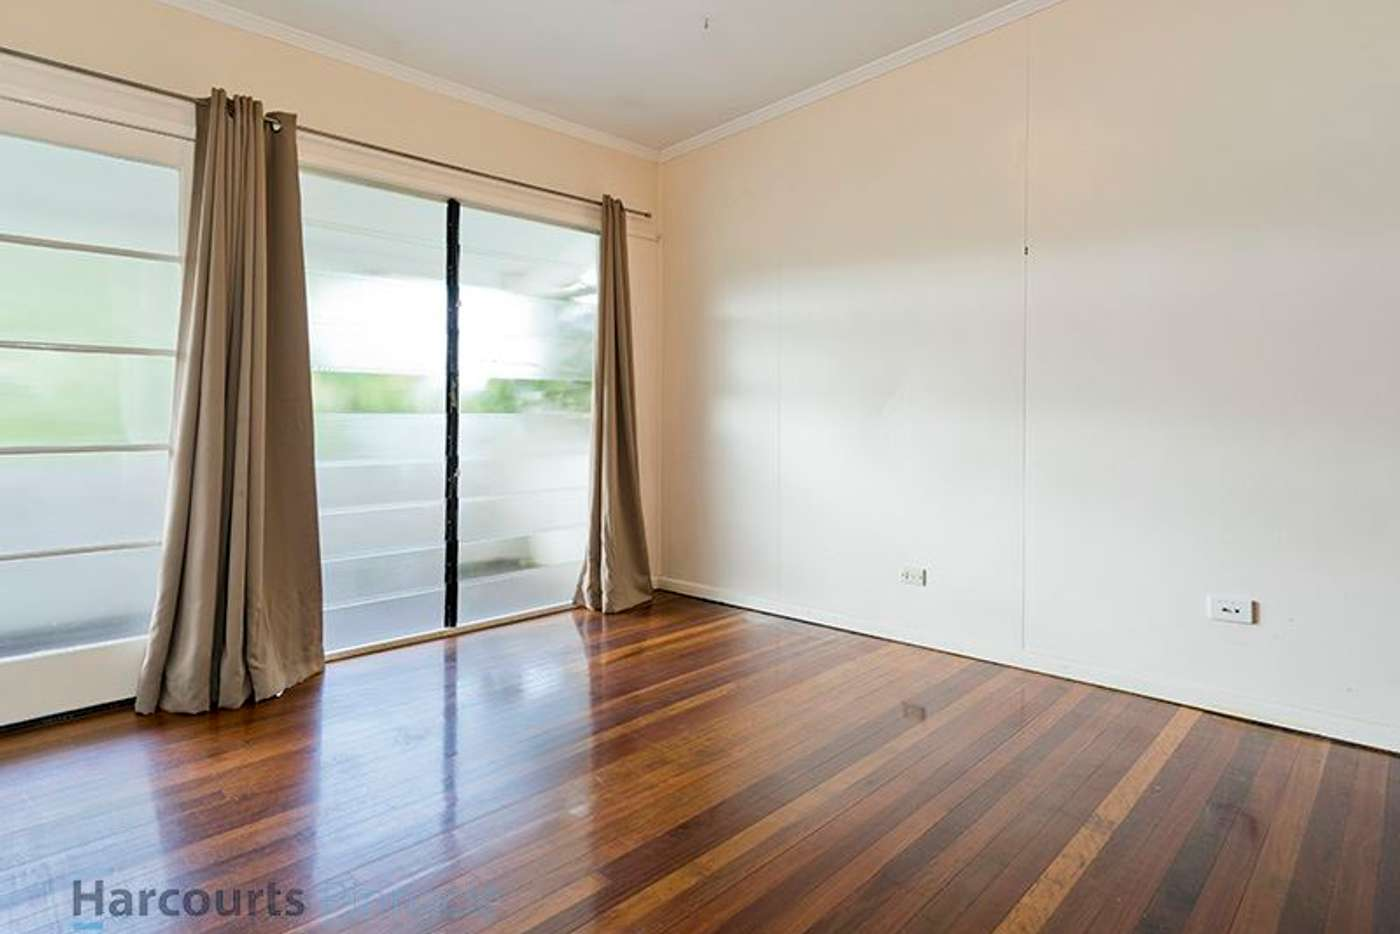 Sixth view of Homely house listing, 255 Payne Rd, The Gap QLD 4061